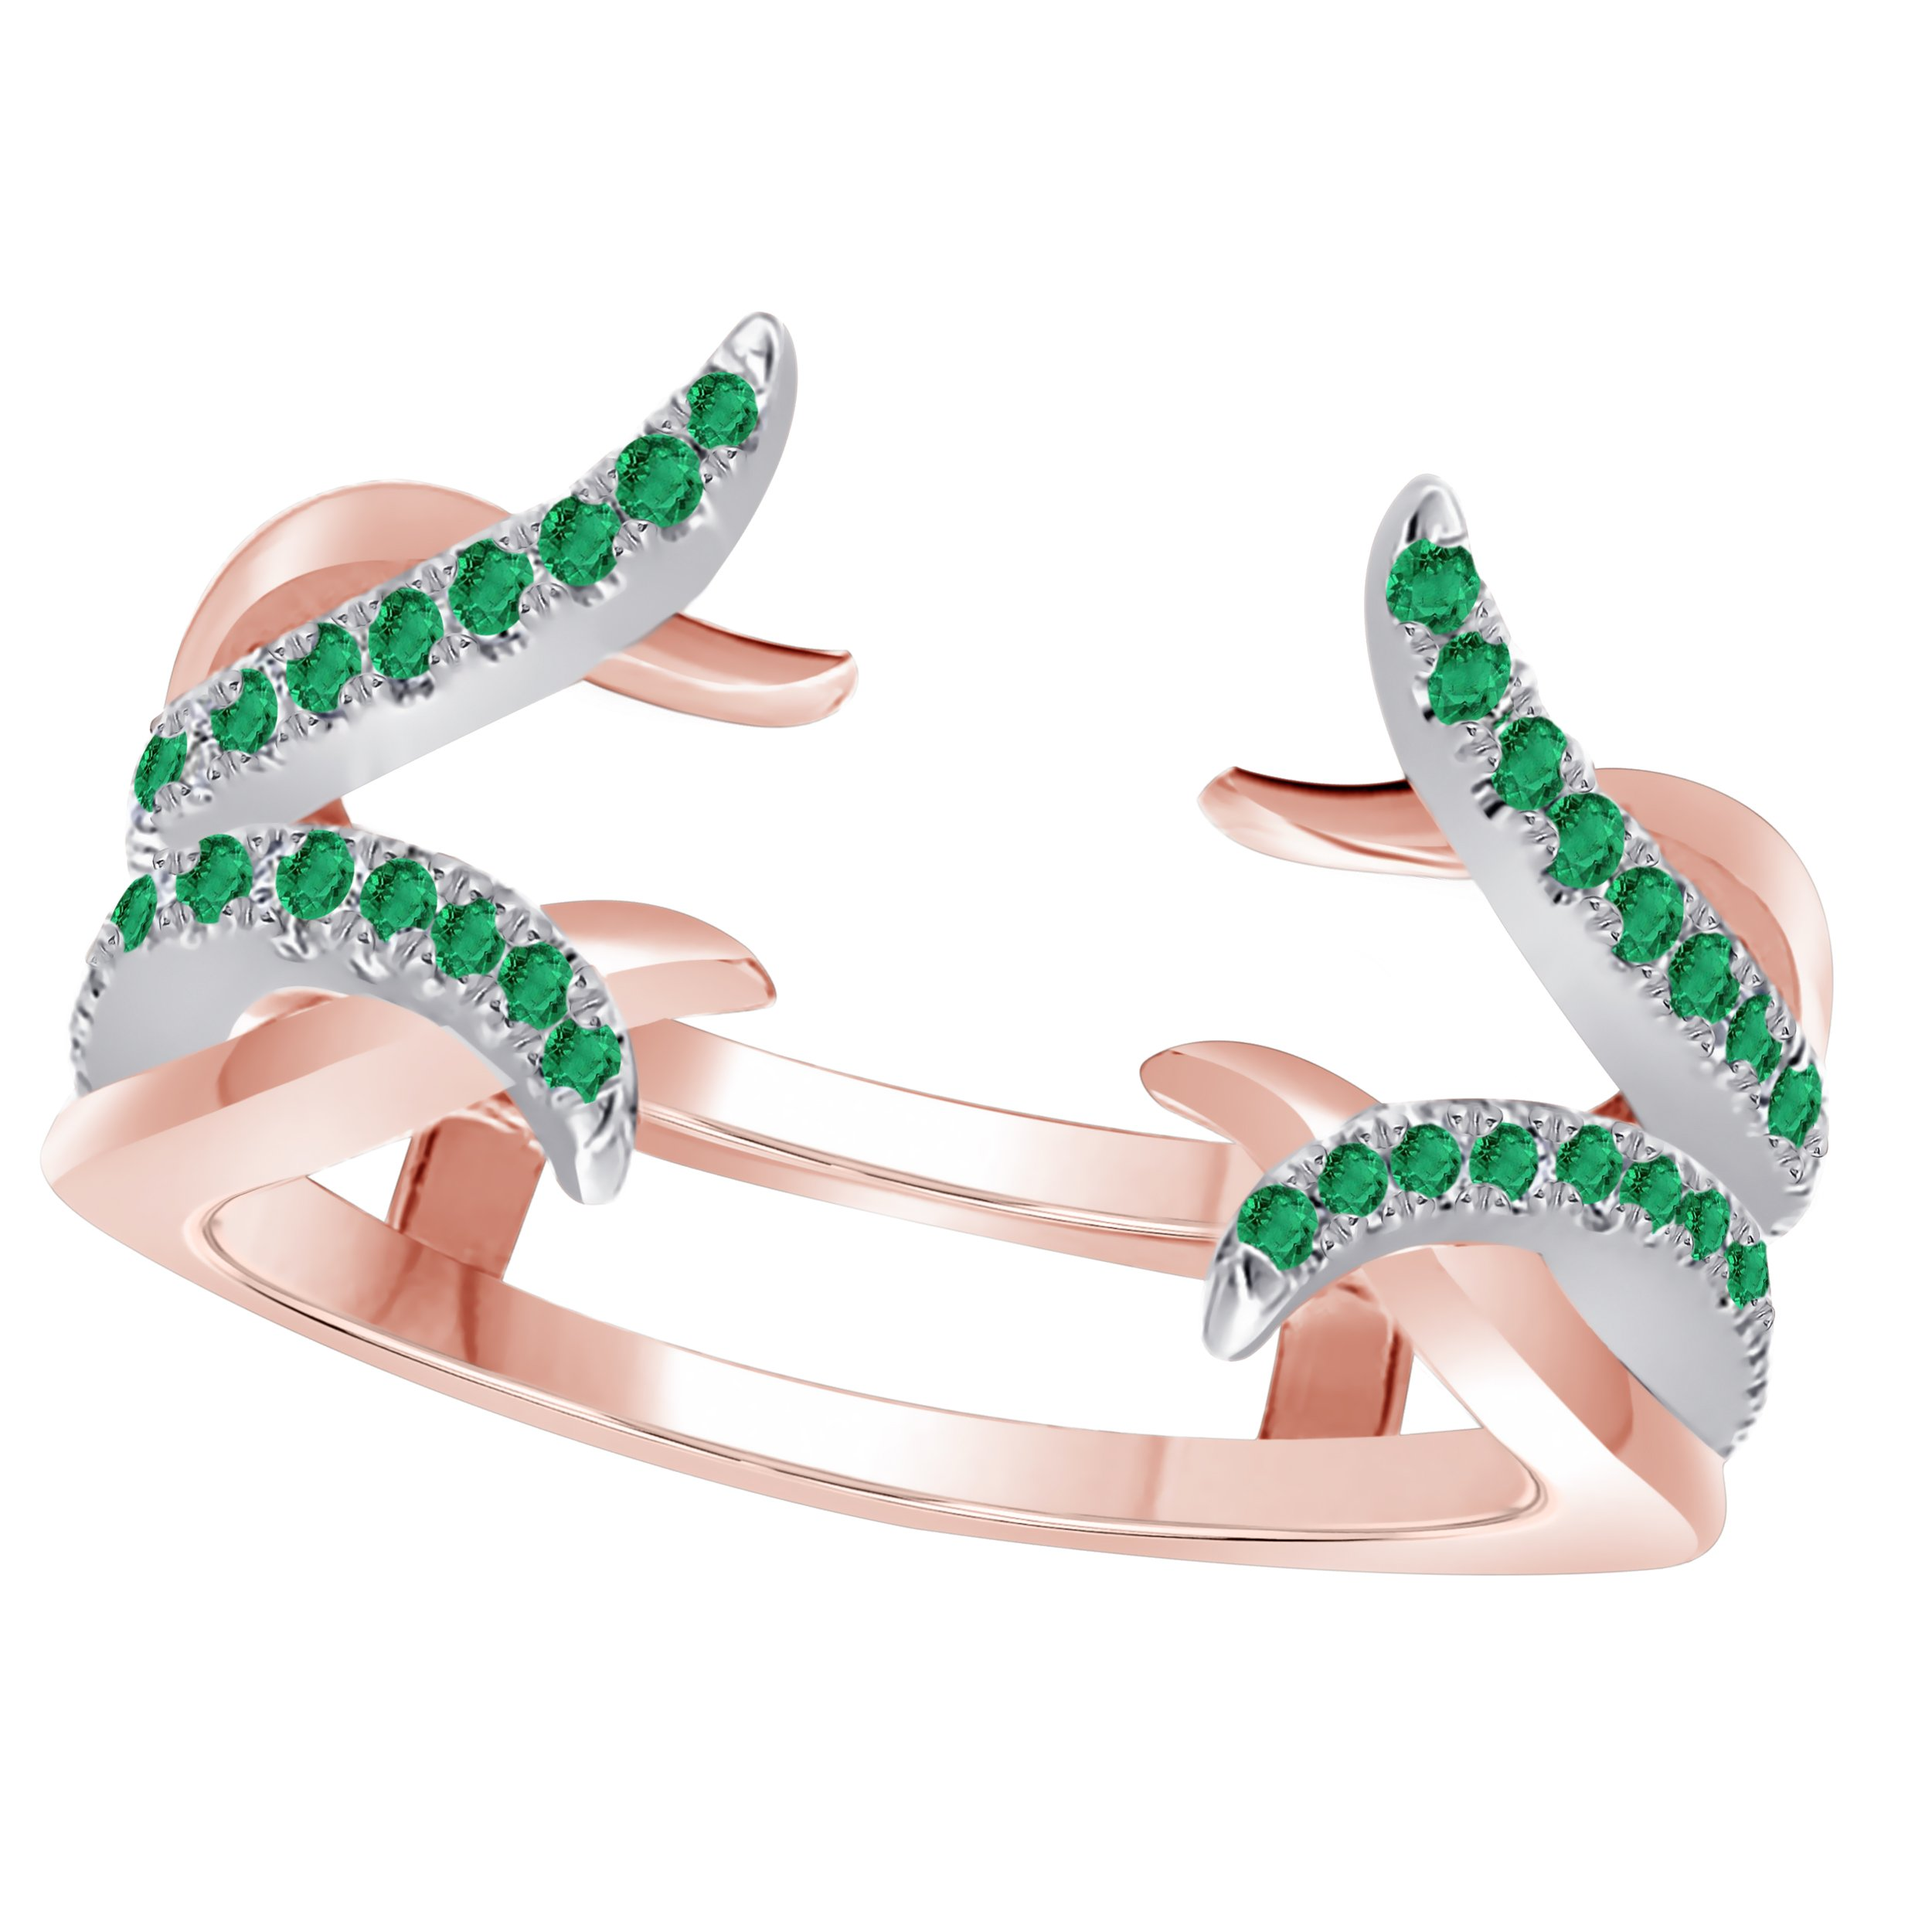 Forever Collection Sterling Silver Plated Alloy Created Green-Emerald Round Solitaire Ring Guard Wrap Enhancer Jacket Wedding Engagement Ring Size 4 to 11